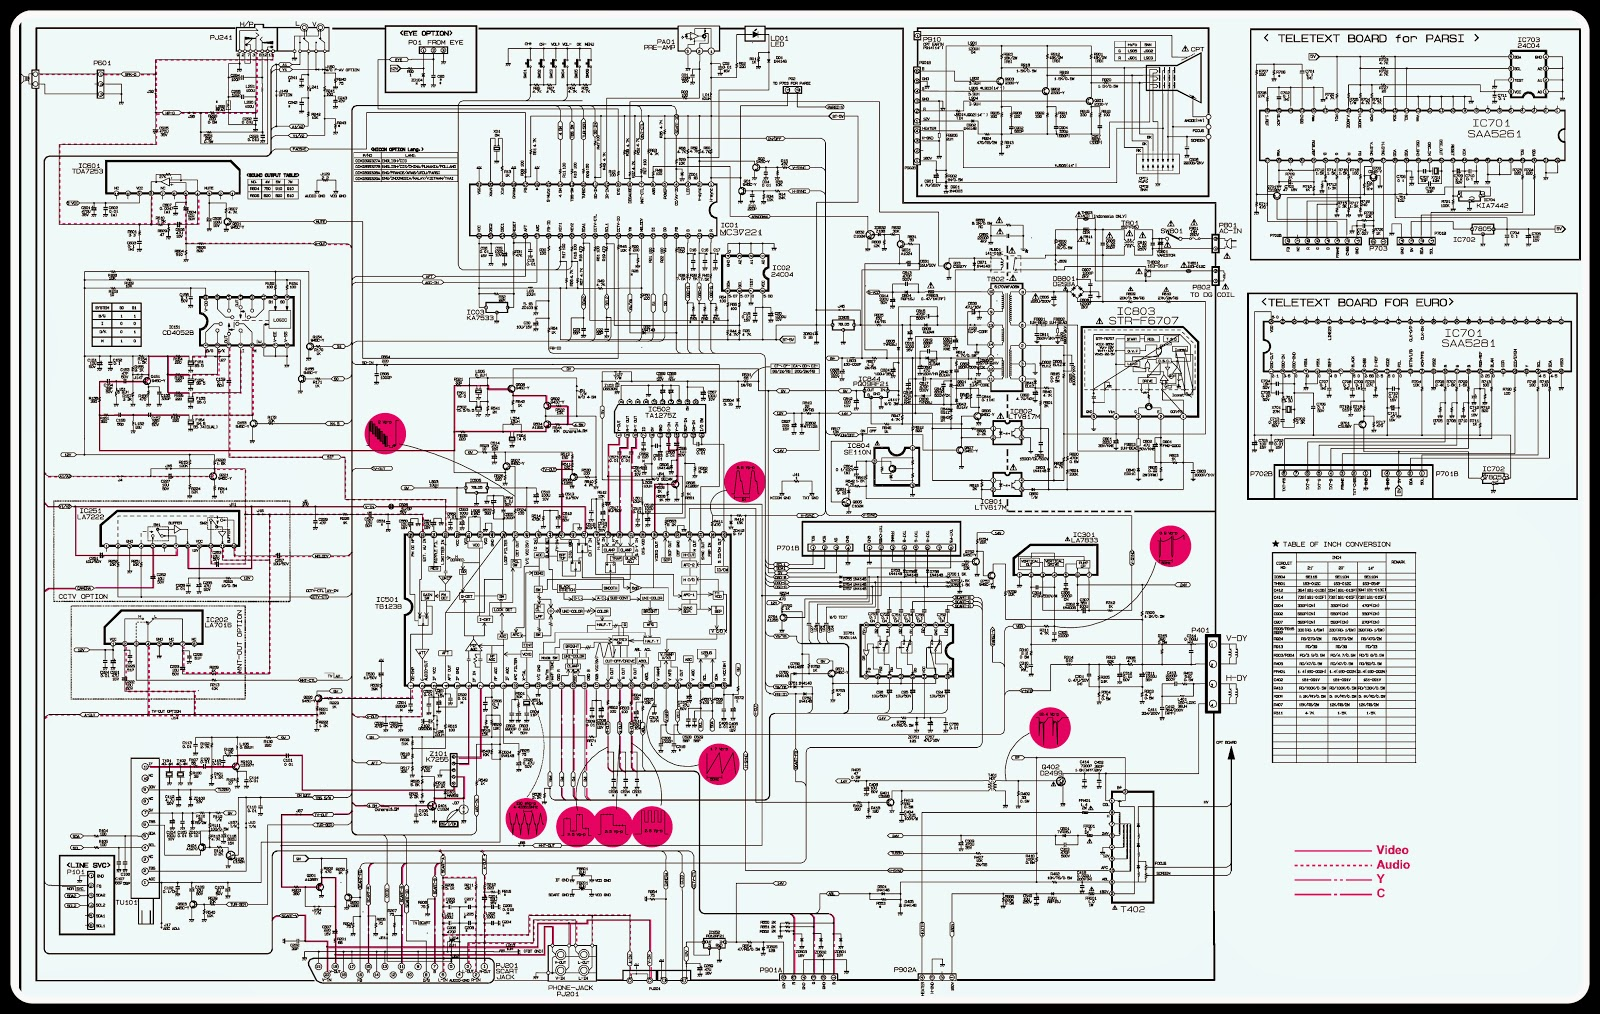 lg cf20f schematic circuit diagram 20 inch crt tv. Black Bedroom Furniture Sets. Home Design Ideas